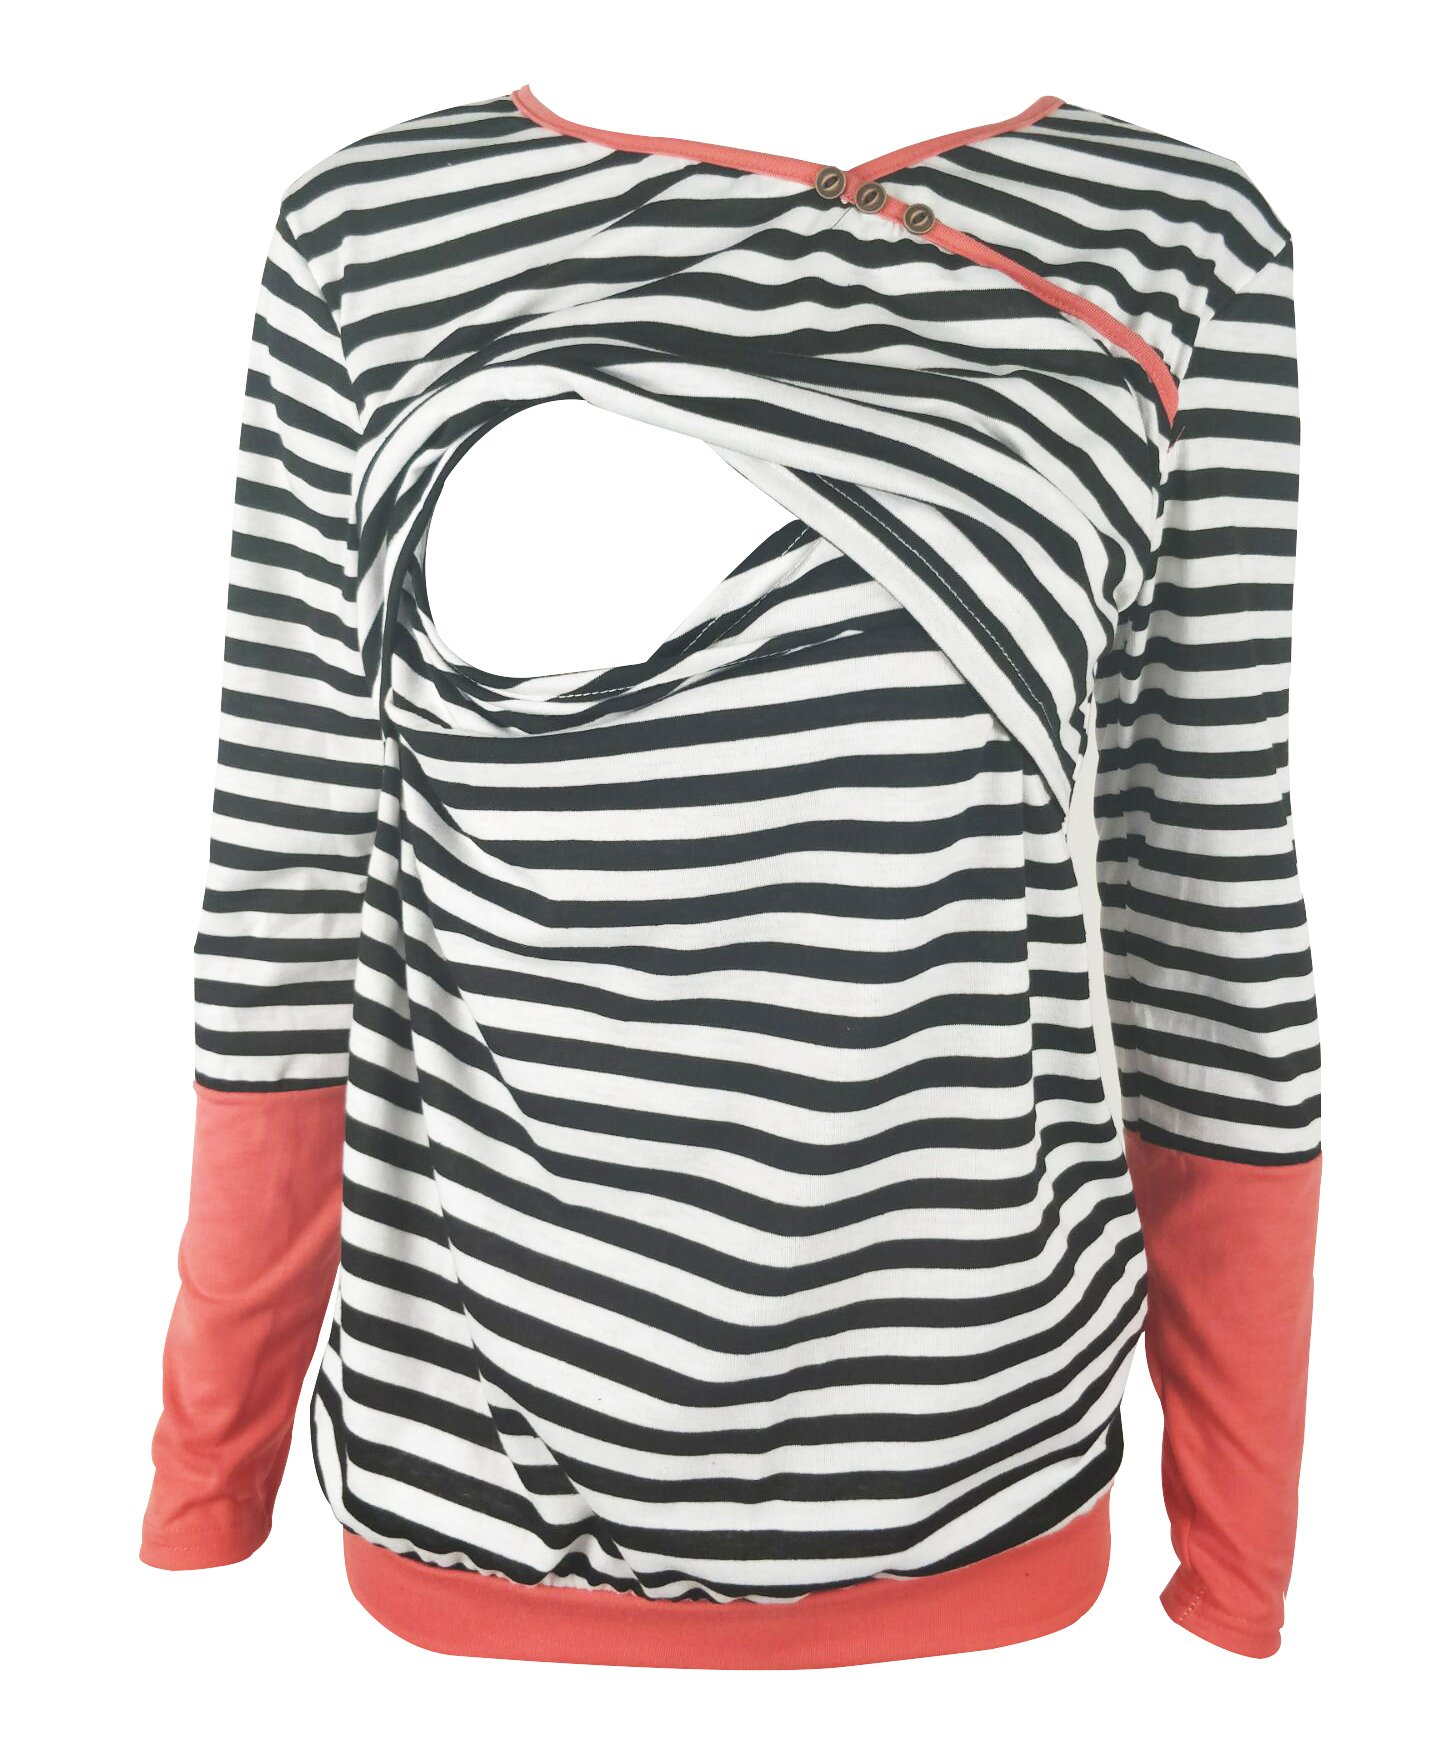 Chulianyouhuo Breastfeeding Shirt Striped Patchwork Long Sleeve Maternity Breastfeeding and Nursing Tops (M, Coral)